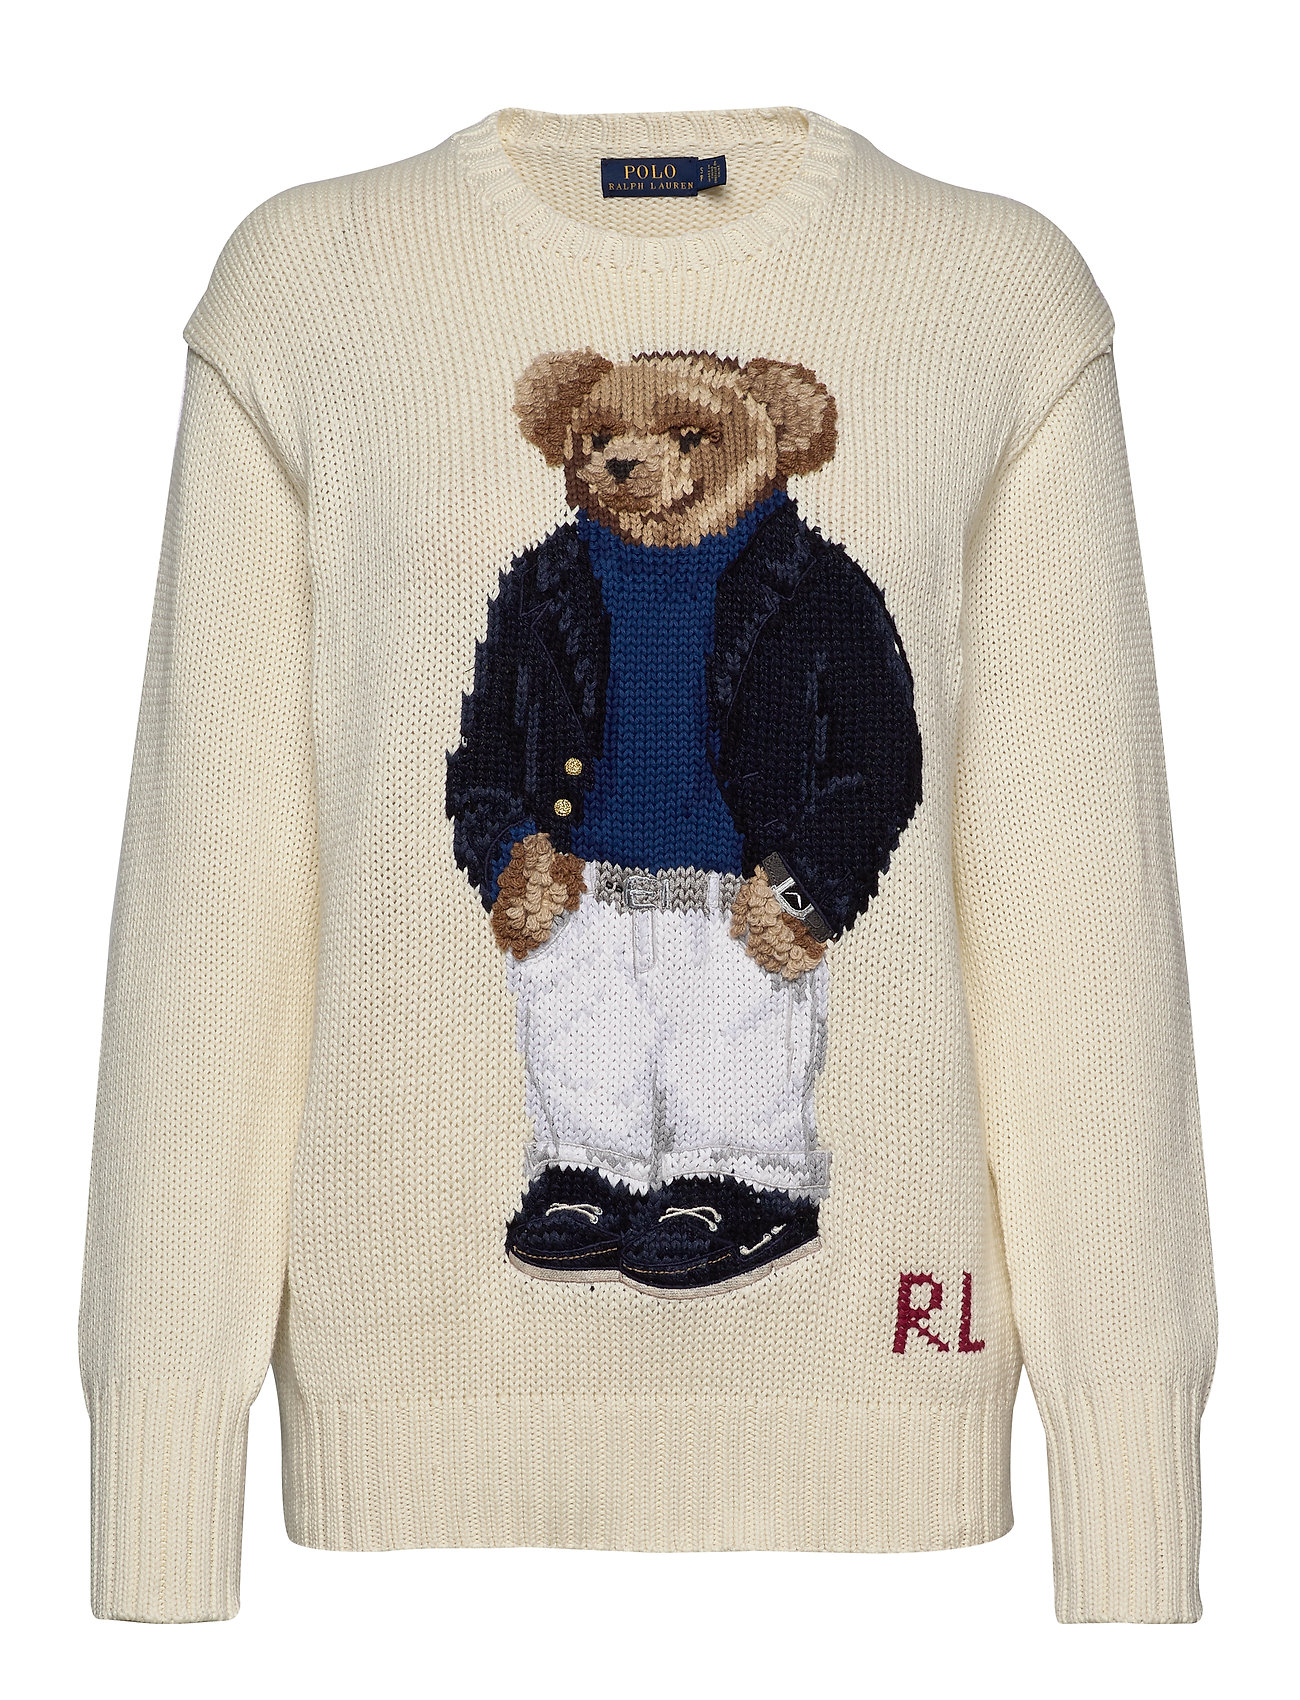 Polo Ralph Lauren Polo Bear Crewneck Sweater - CREAM MULTI